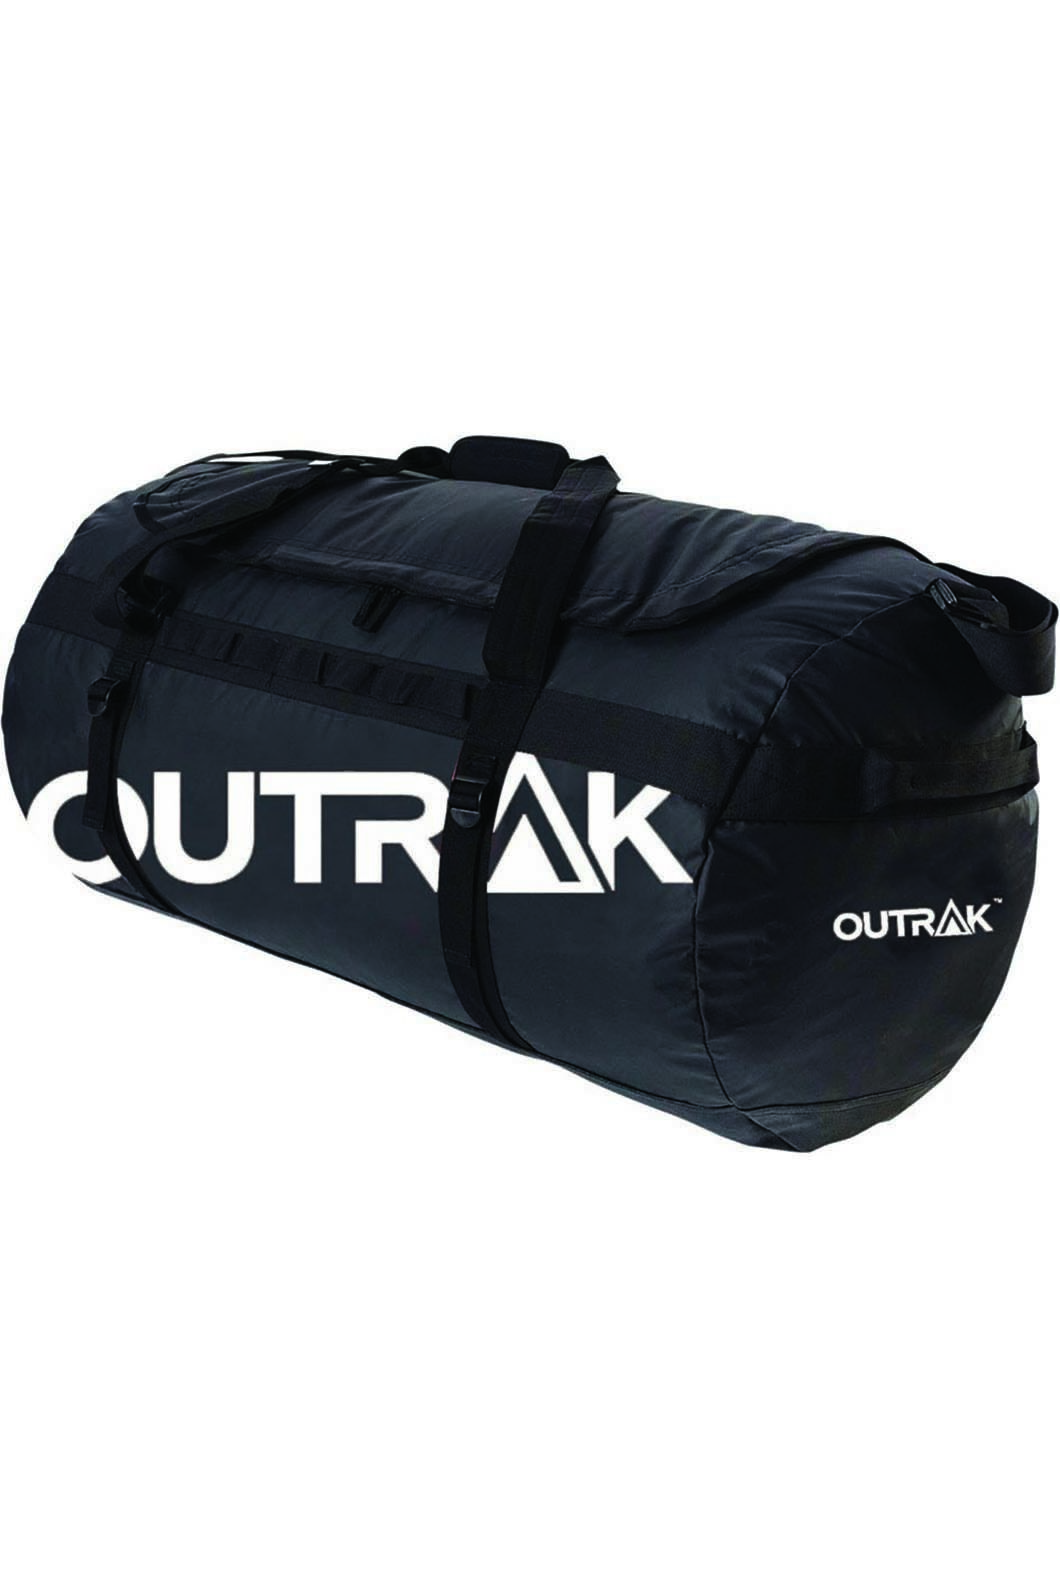 Outrak PVC Duffle Bag 90L, None, hi-res